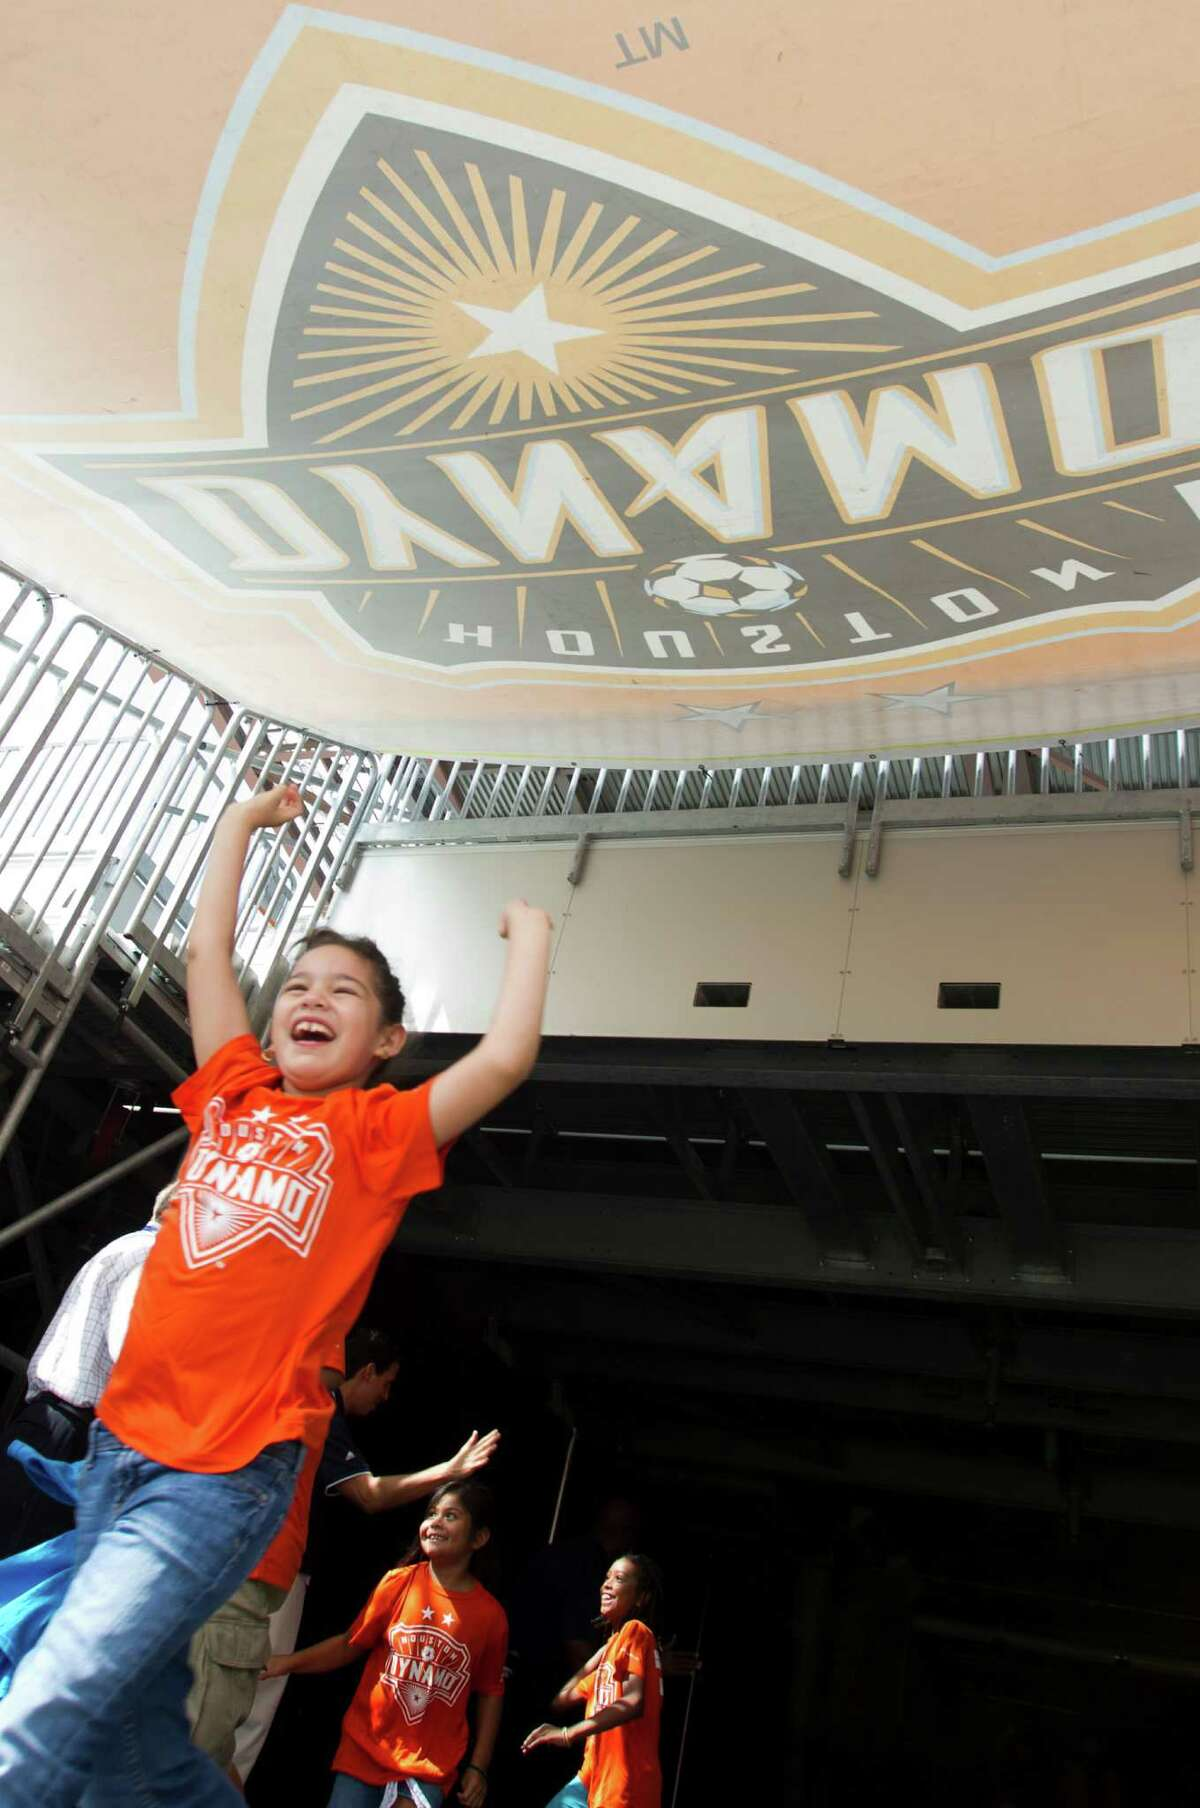 Isabella Fernandez cheers as she runs through the tunnel to play soccer at BBVA Compass Stadium with her classmates from Ripley House Community Center Tuesday, June 25, 2013, in Houston. The children ran drills and played games on the stadium floor.